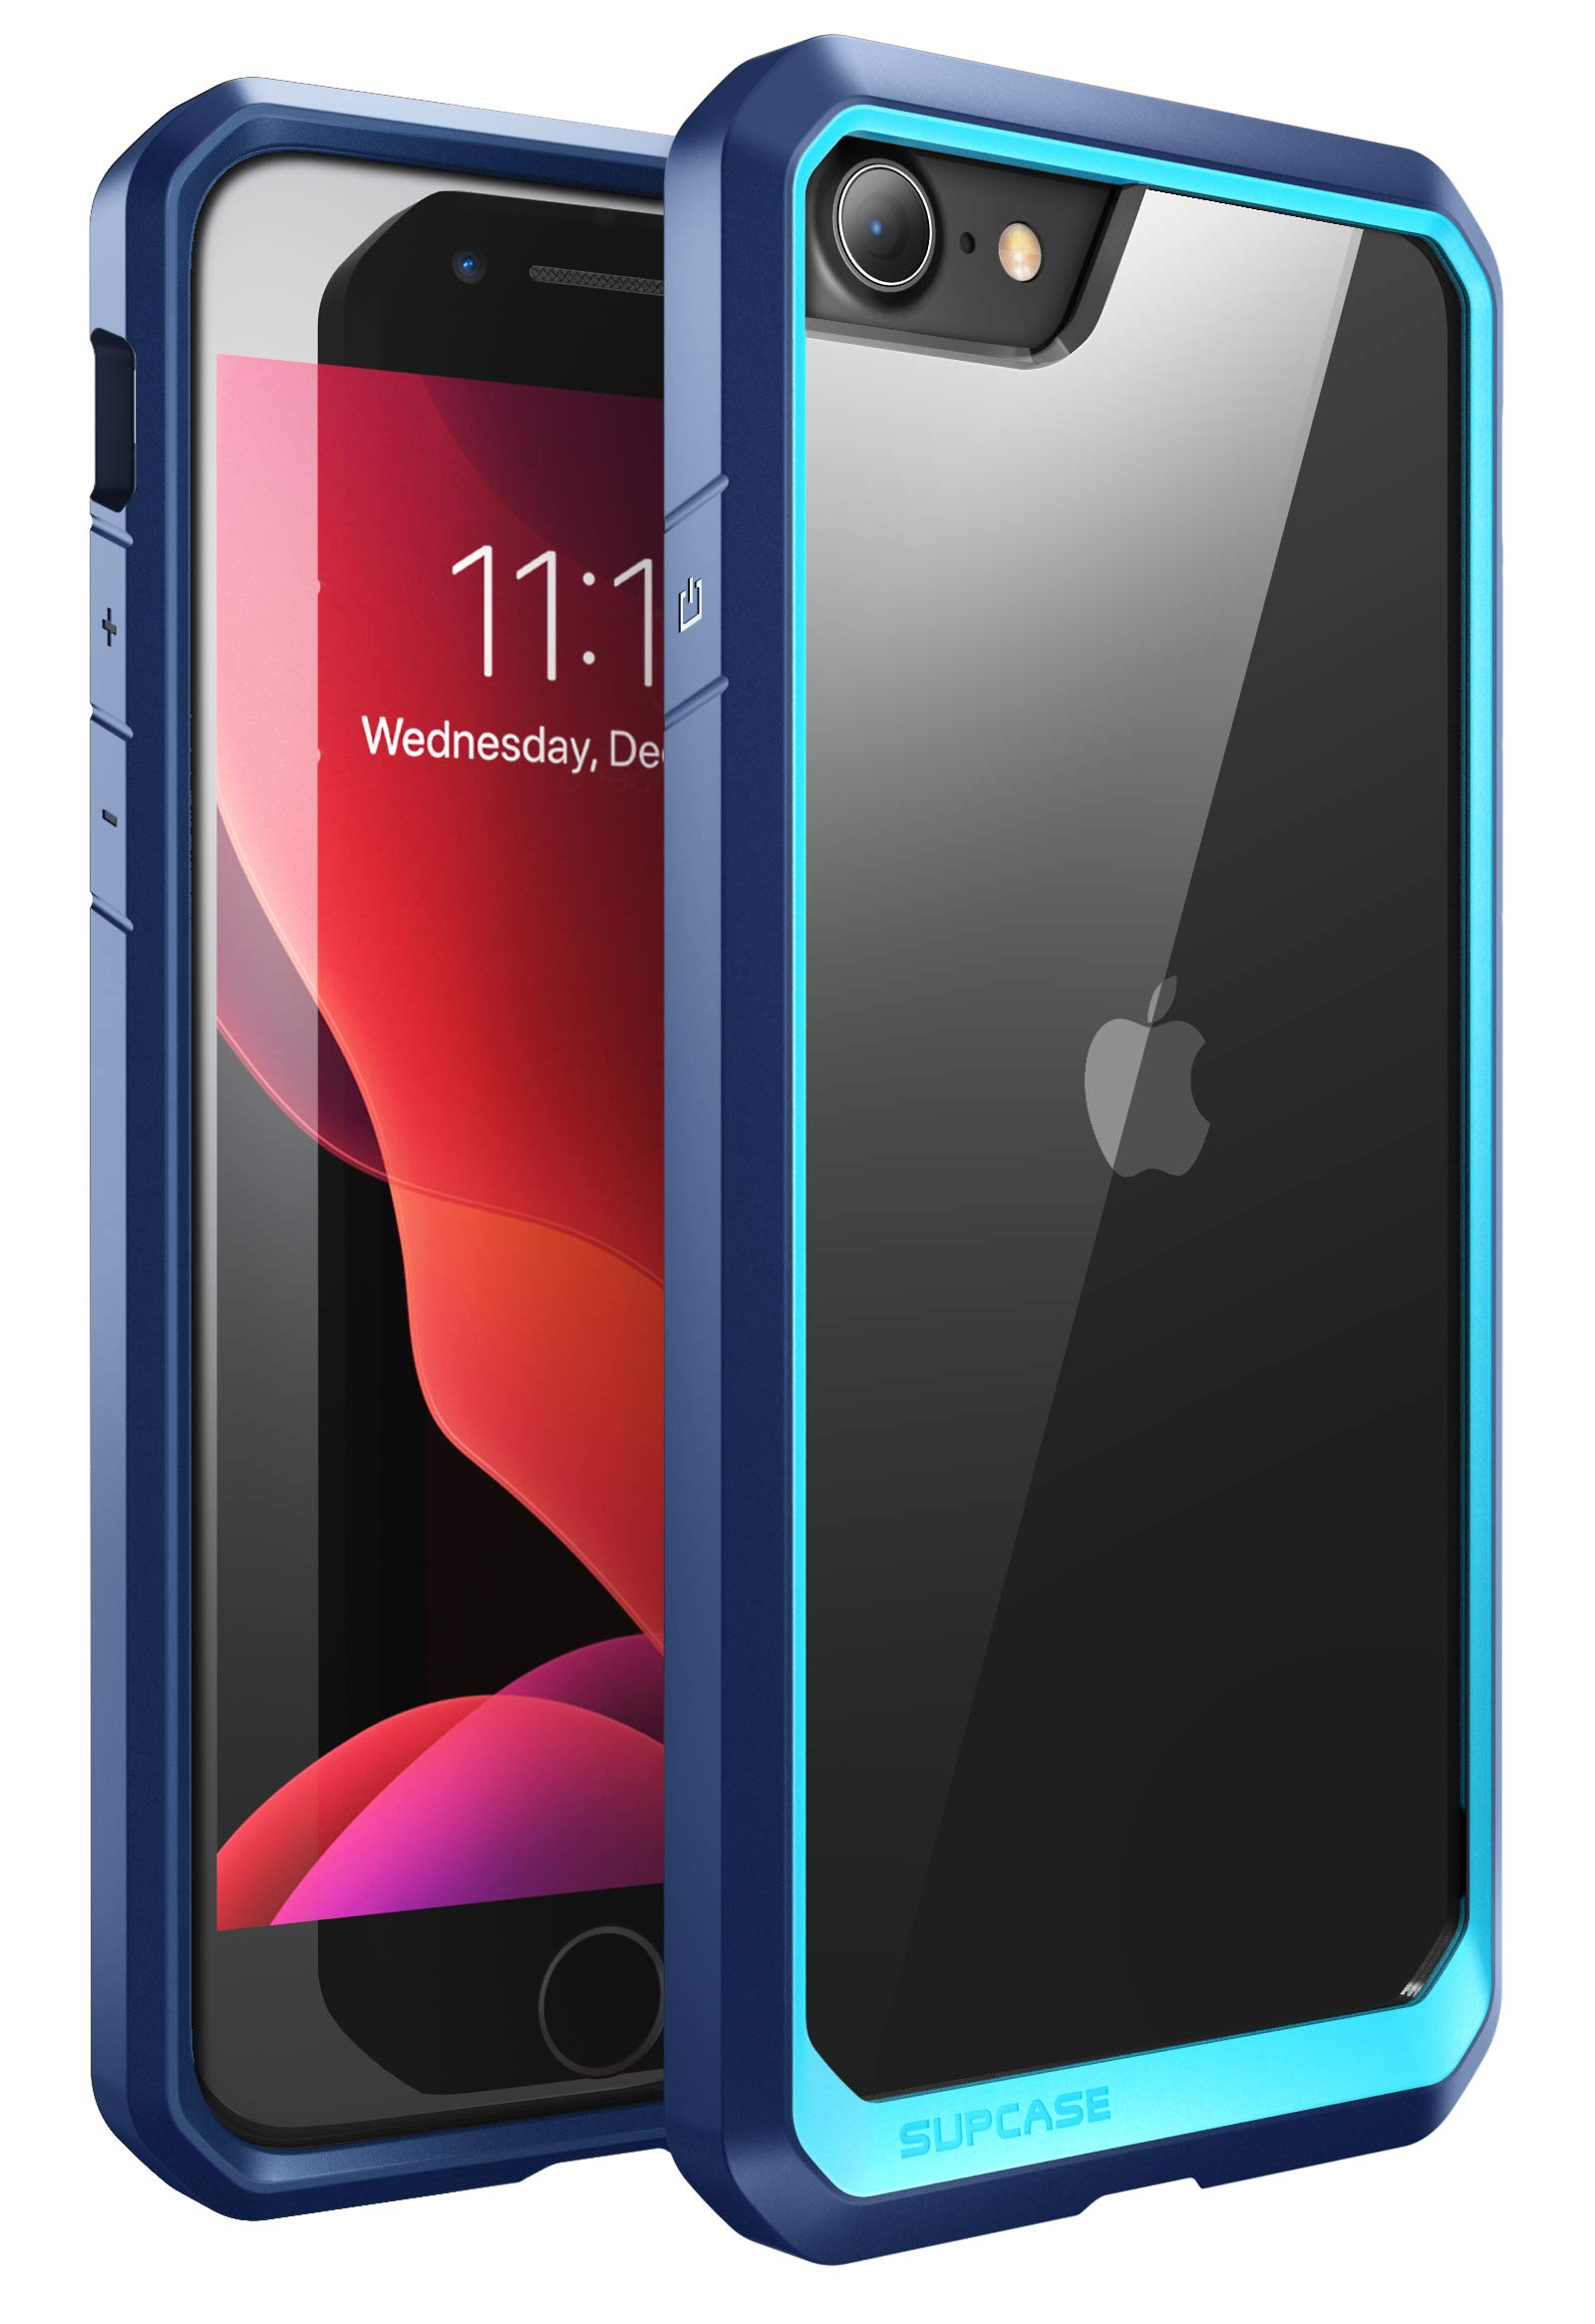 SUPCASE Unicorn Beetle Series Case Designed for iPhone SE 2nd Generation (2020)/iPhone 7/iPhone 8, Premium Hybrid Protective Frost Clear Case (Blue)